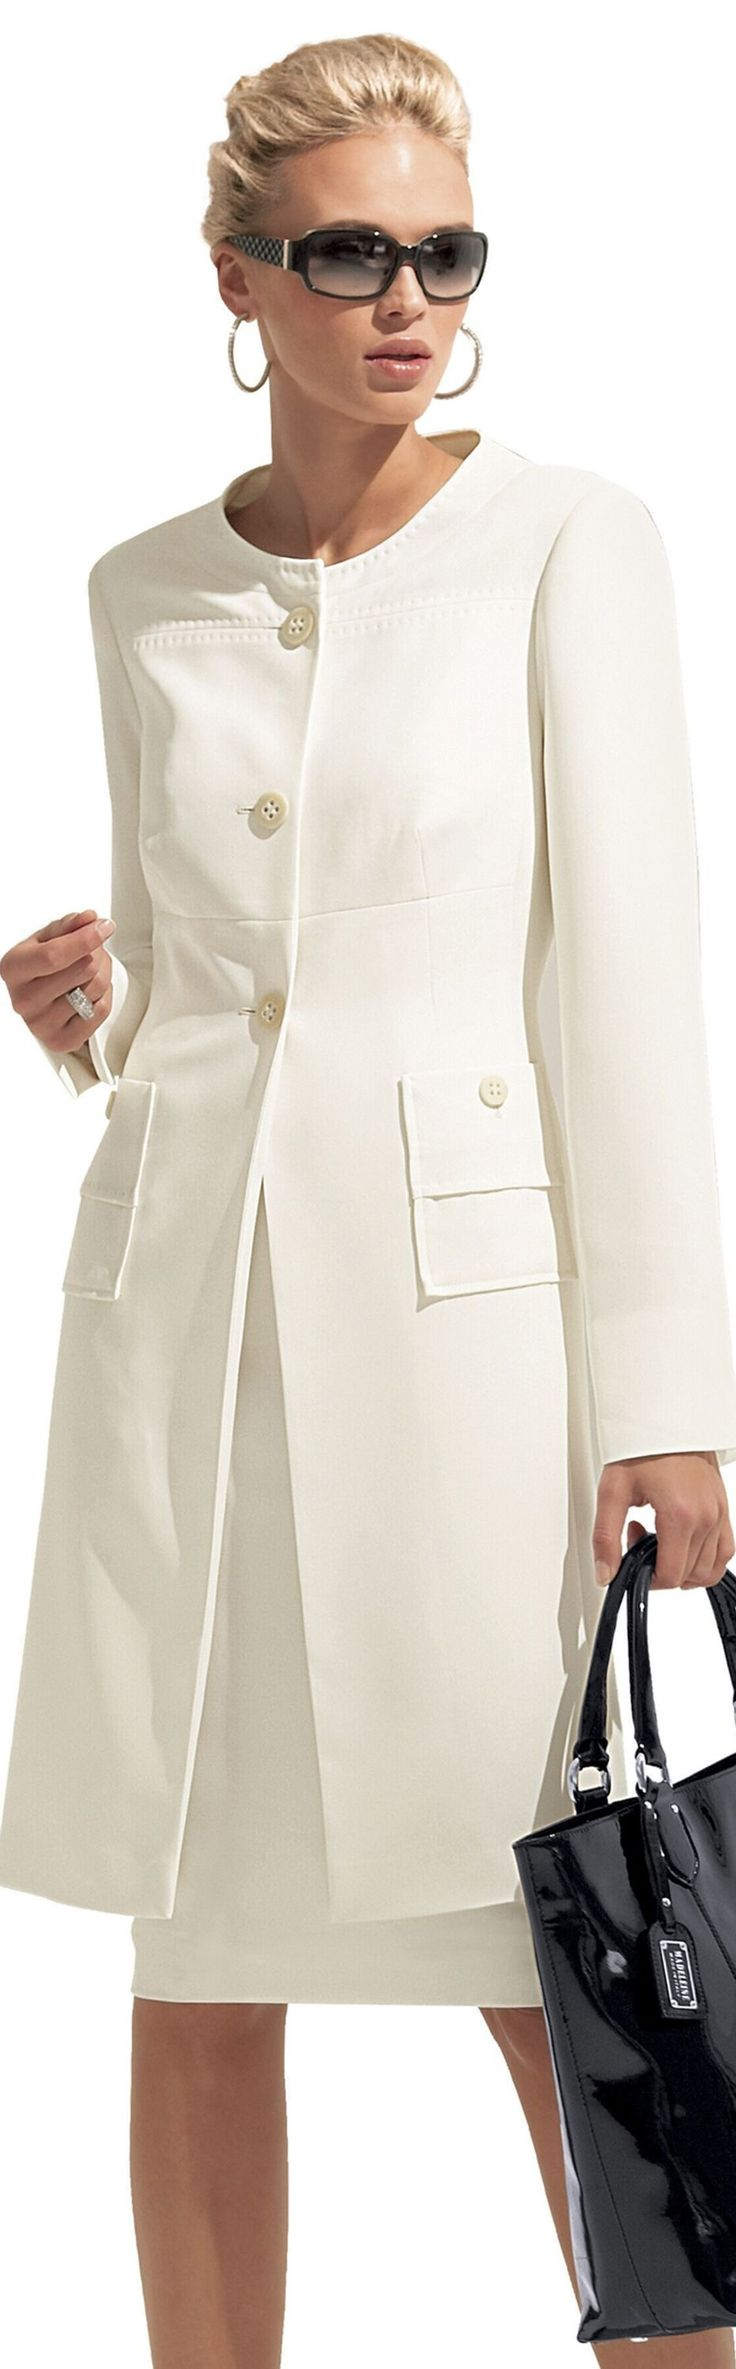 White dress coat - Find This Pin And More On Coats Or Coat And Dress Sets Or Ensembles